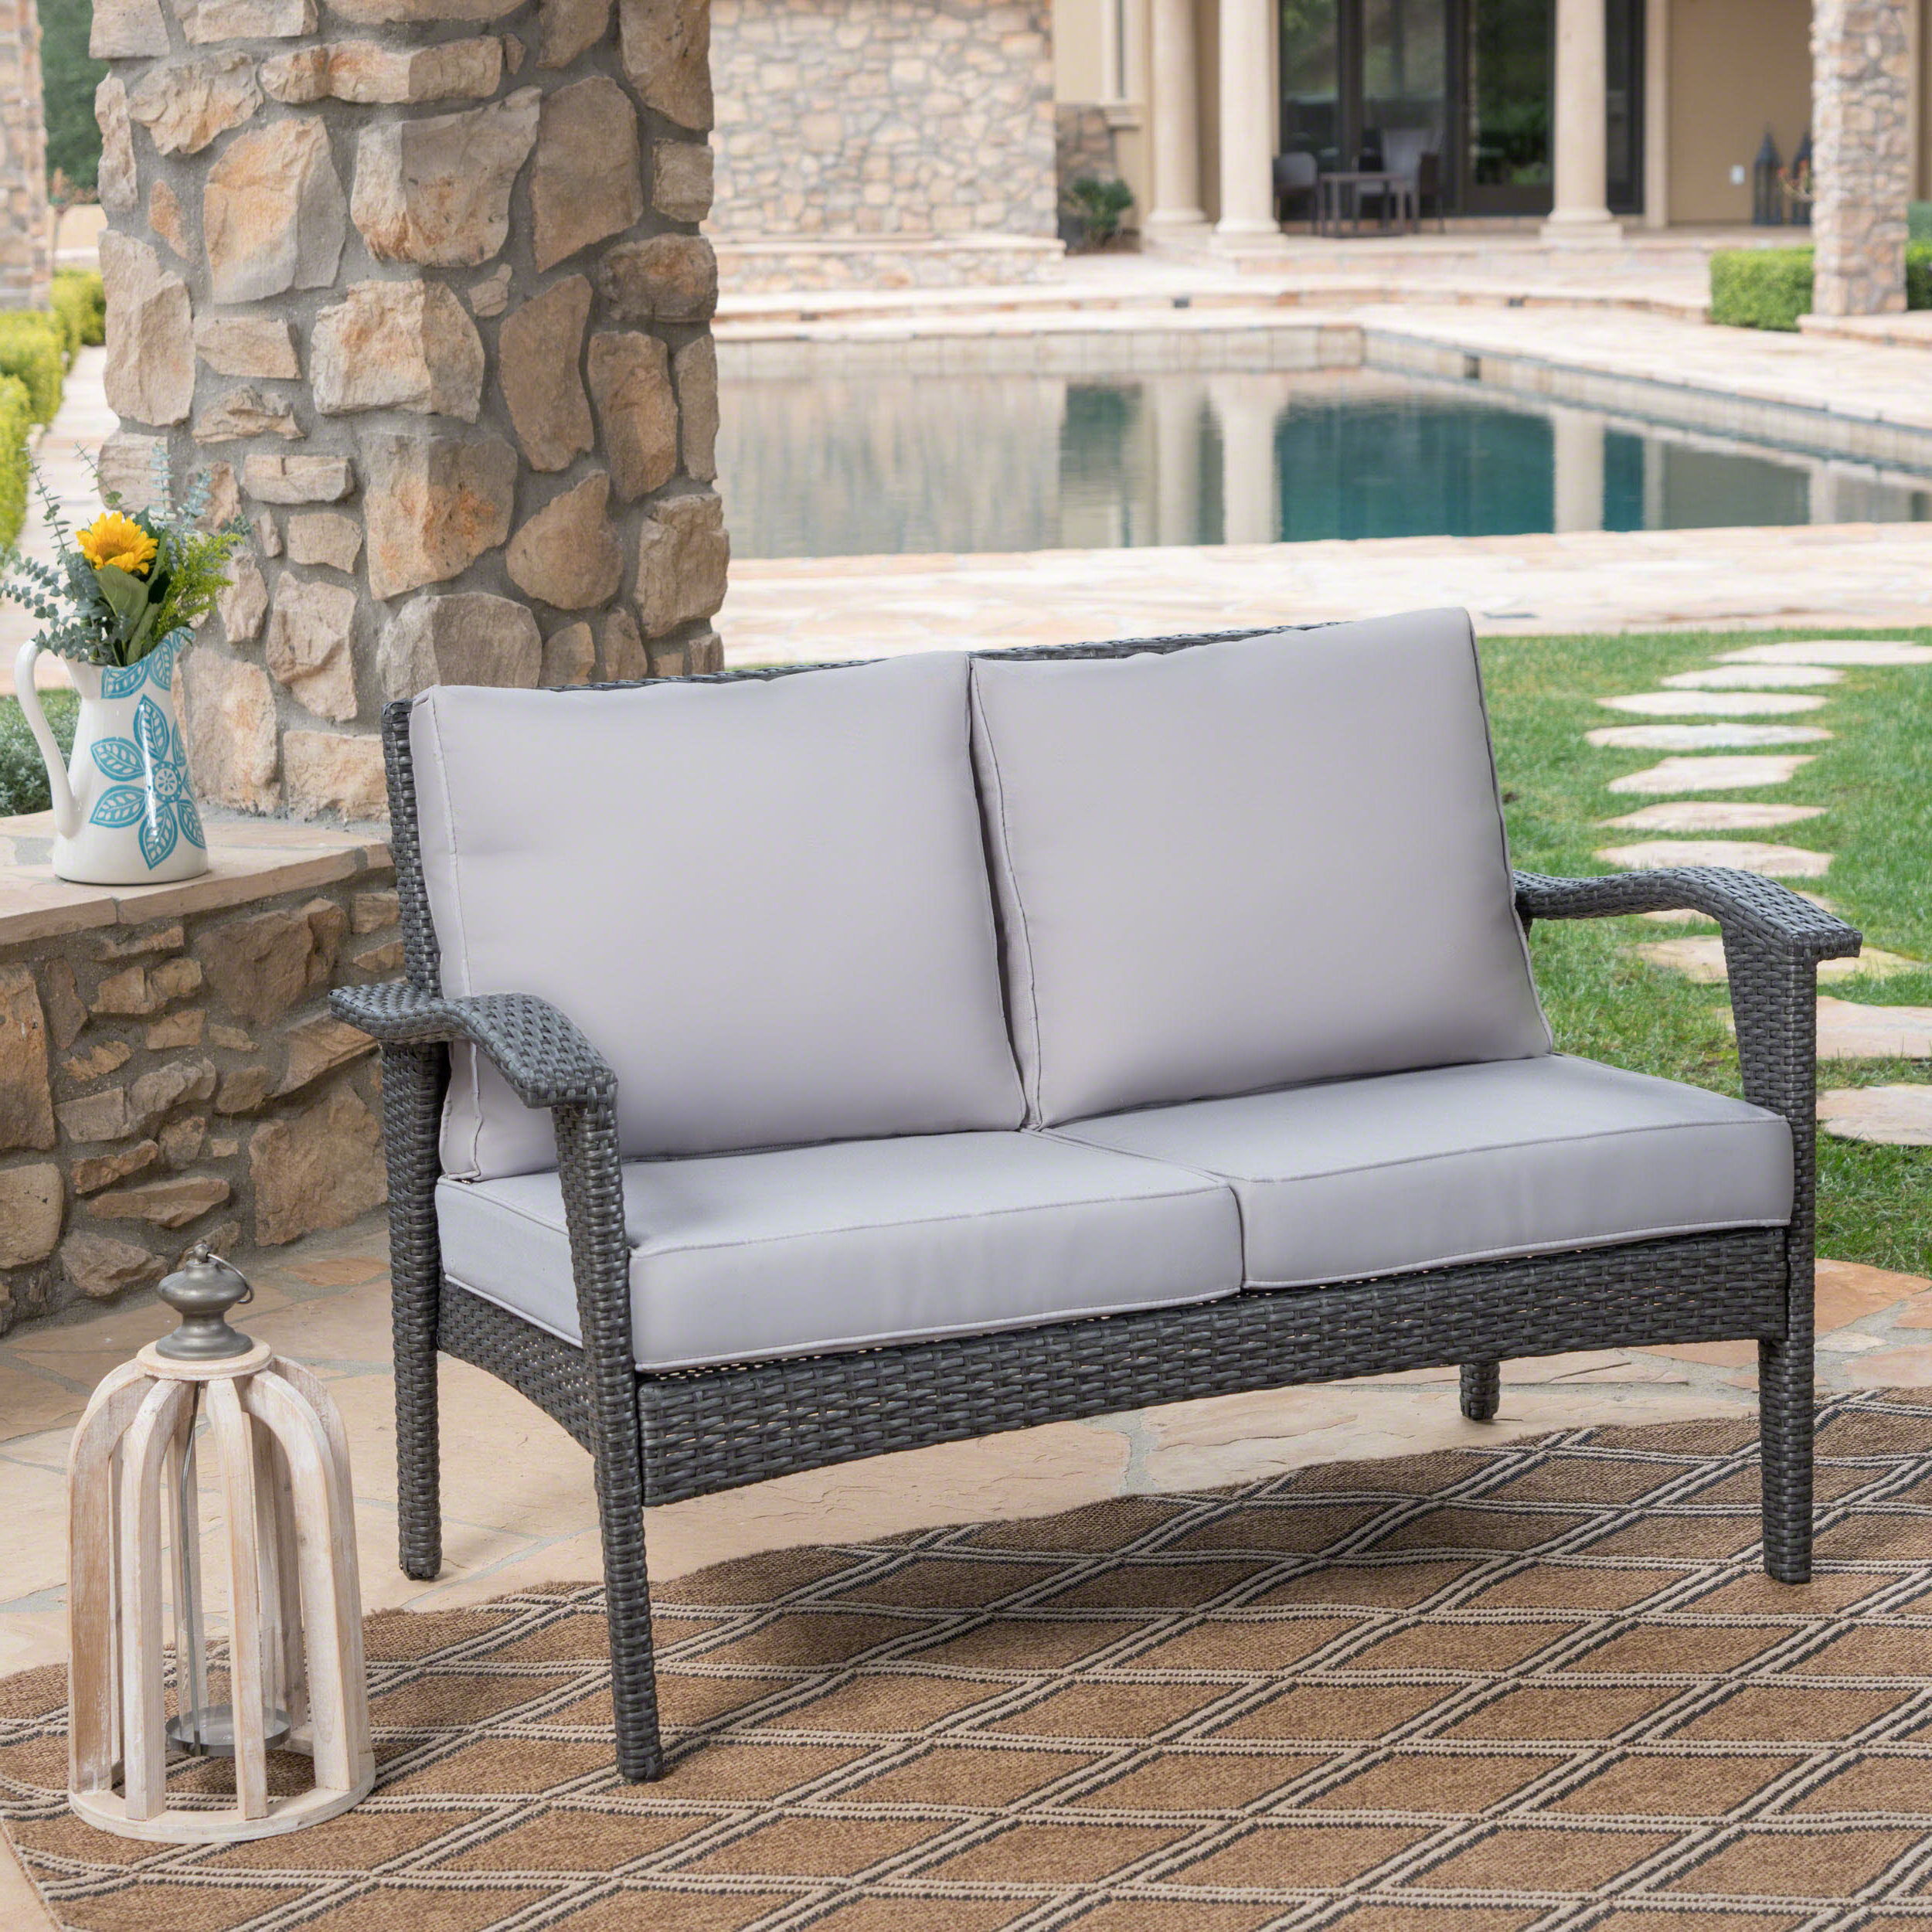 Laverton Loveseats With Cushions In Fashionable Hagler Outdoor Loveseat With Cushions (View 6 of 20)